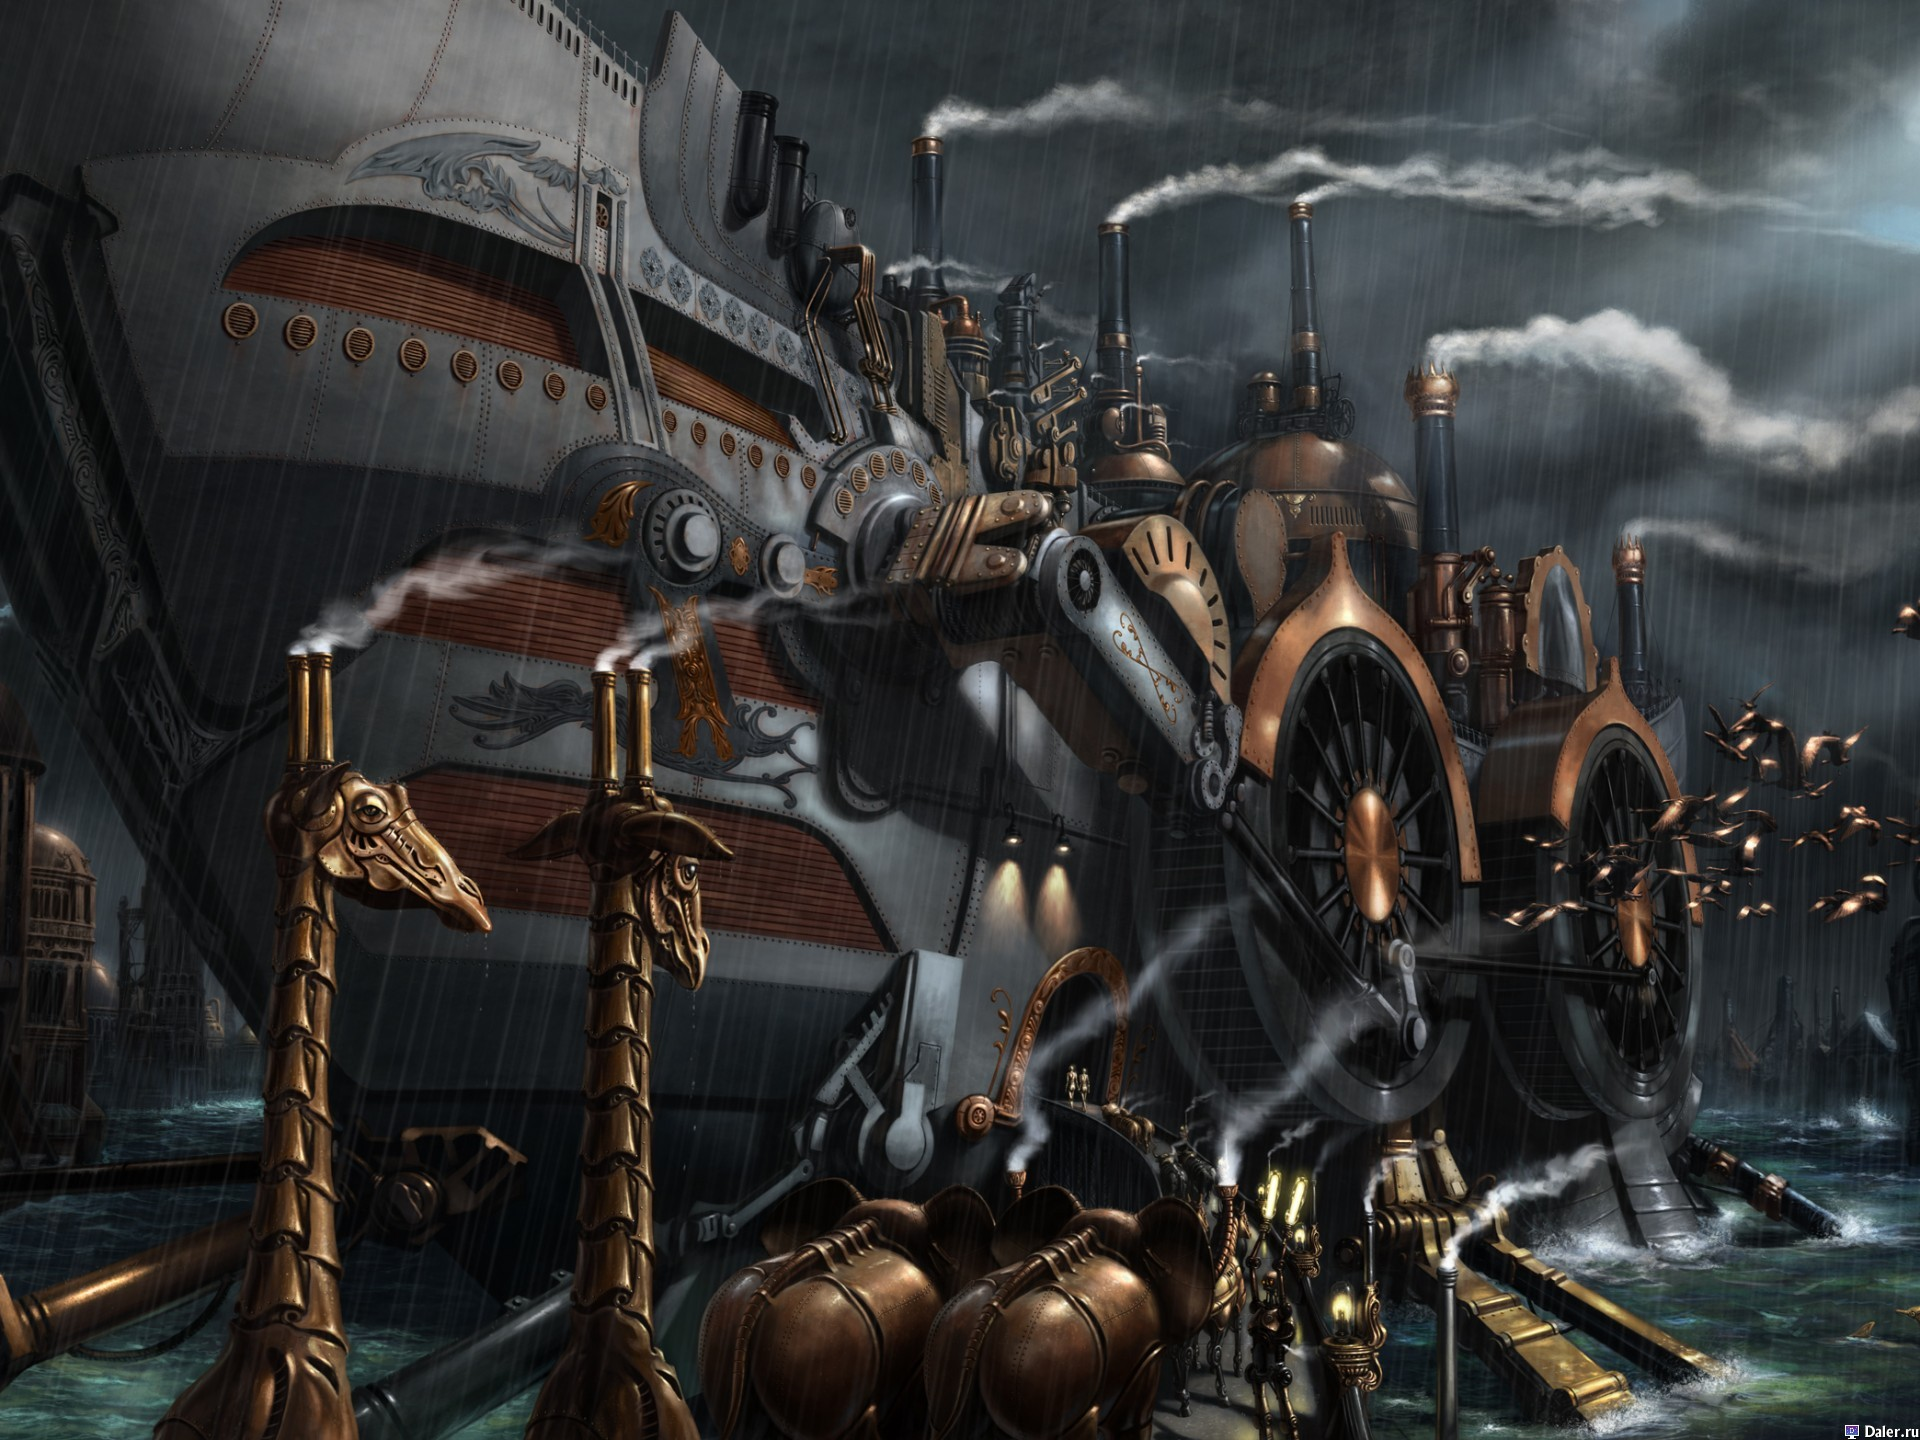 Steampunk Ships Wallpaper 1920x1440 Steampunk Ships Bernard Digital 1920x1440